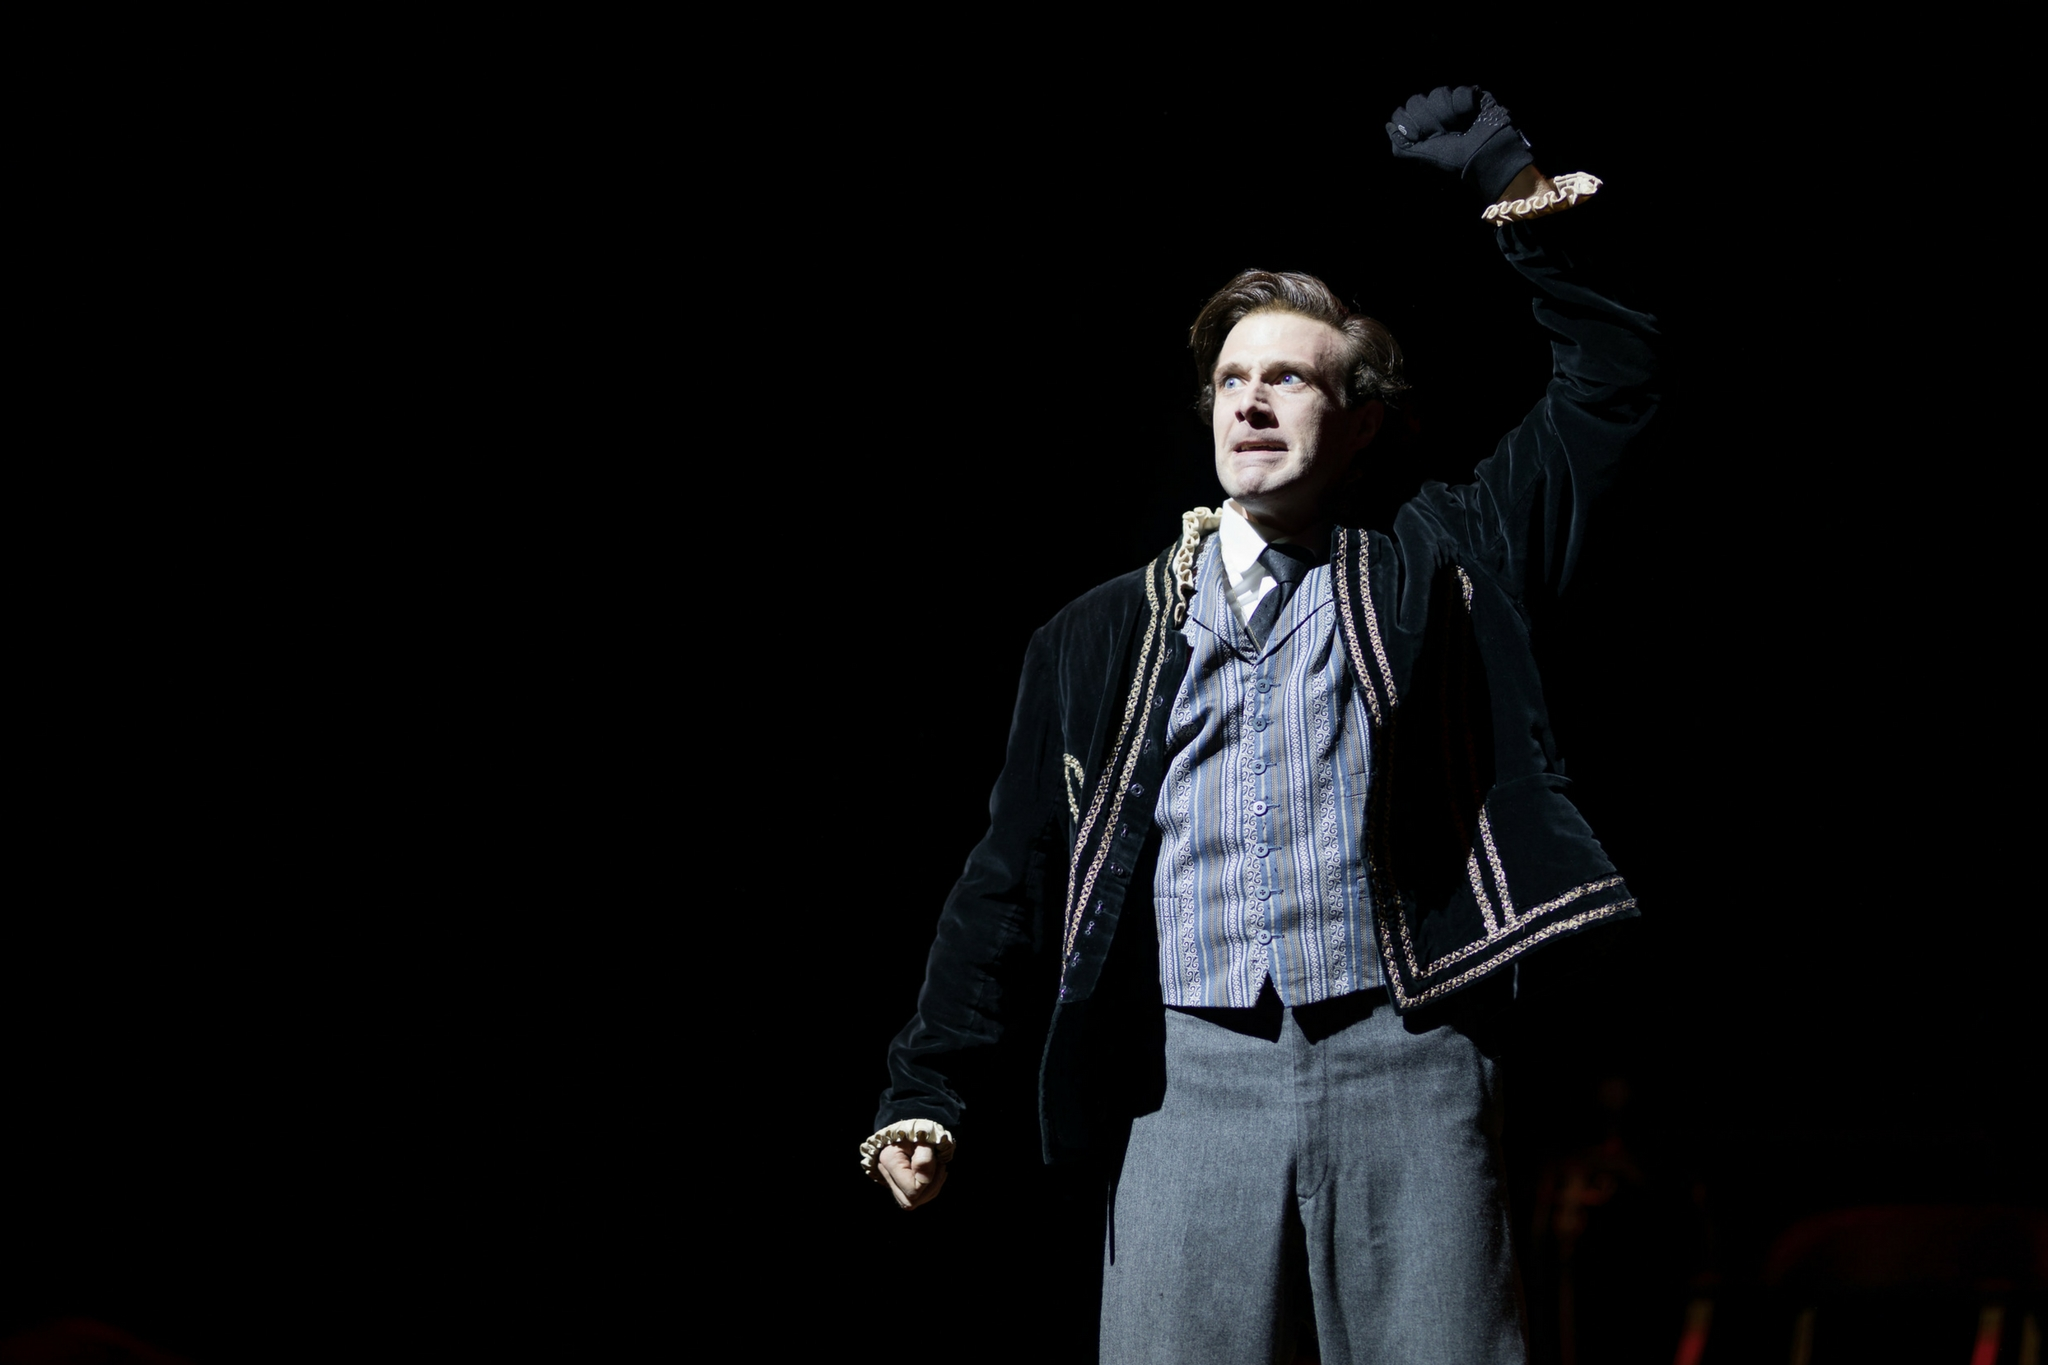 Jacob Fishel (Edwin Booth) in Our American Hamlet, 2017-Photo by Nile Hawver